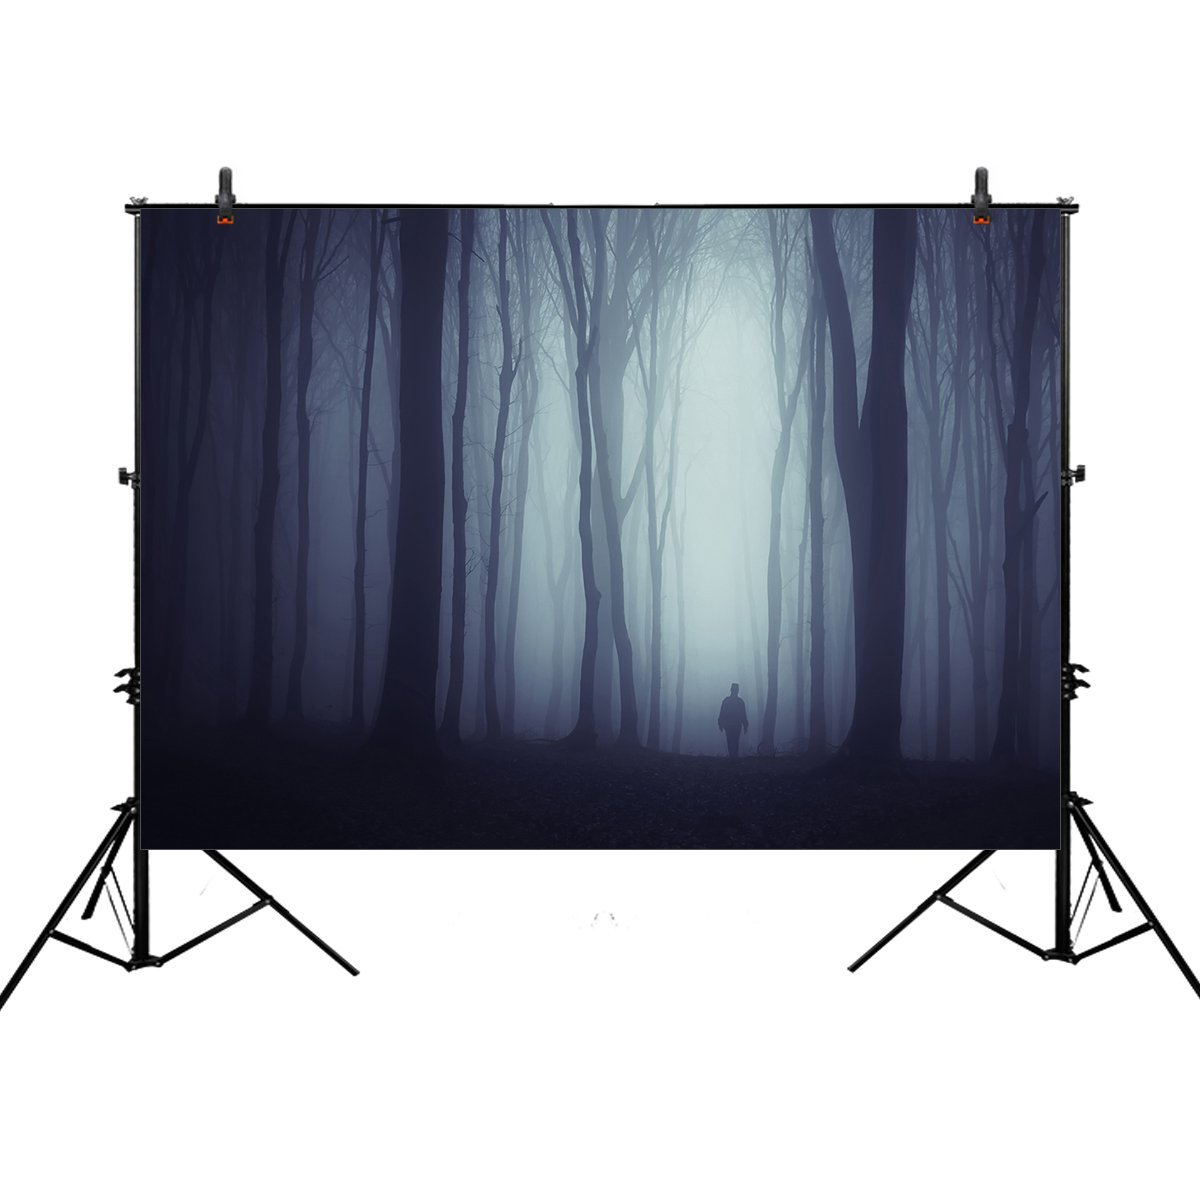 Allenjoy 7x5ft photography backdrop background halloween woods horror scary Ghost night spooky dark forest props photo studio booth